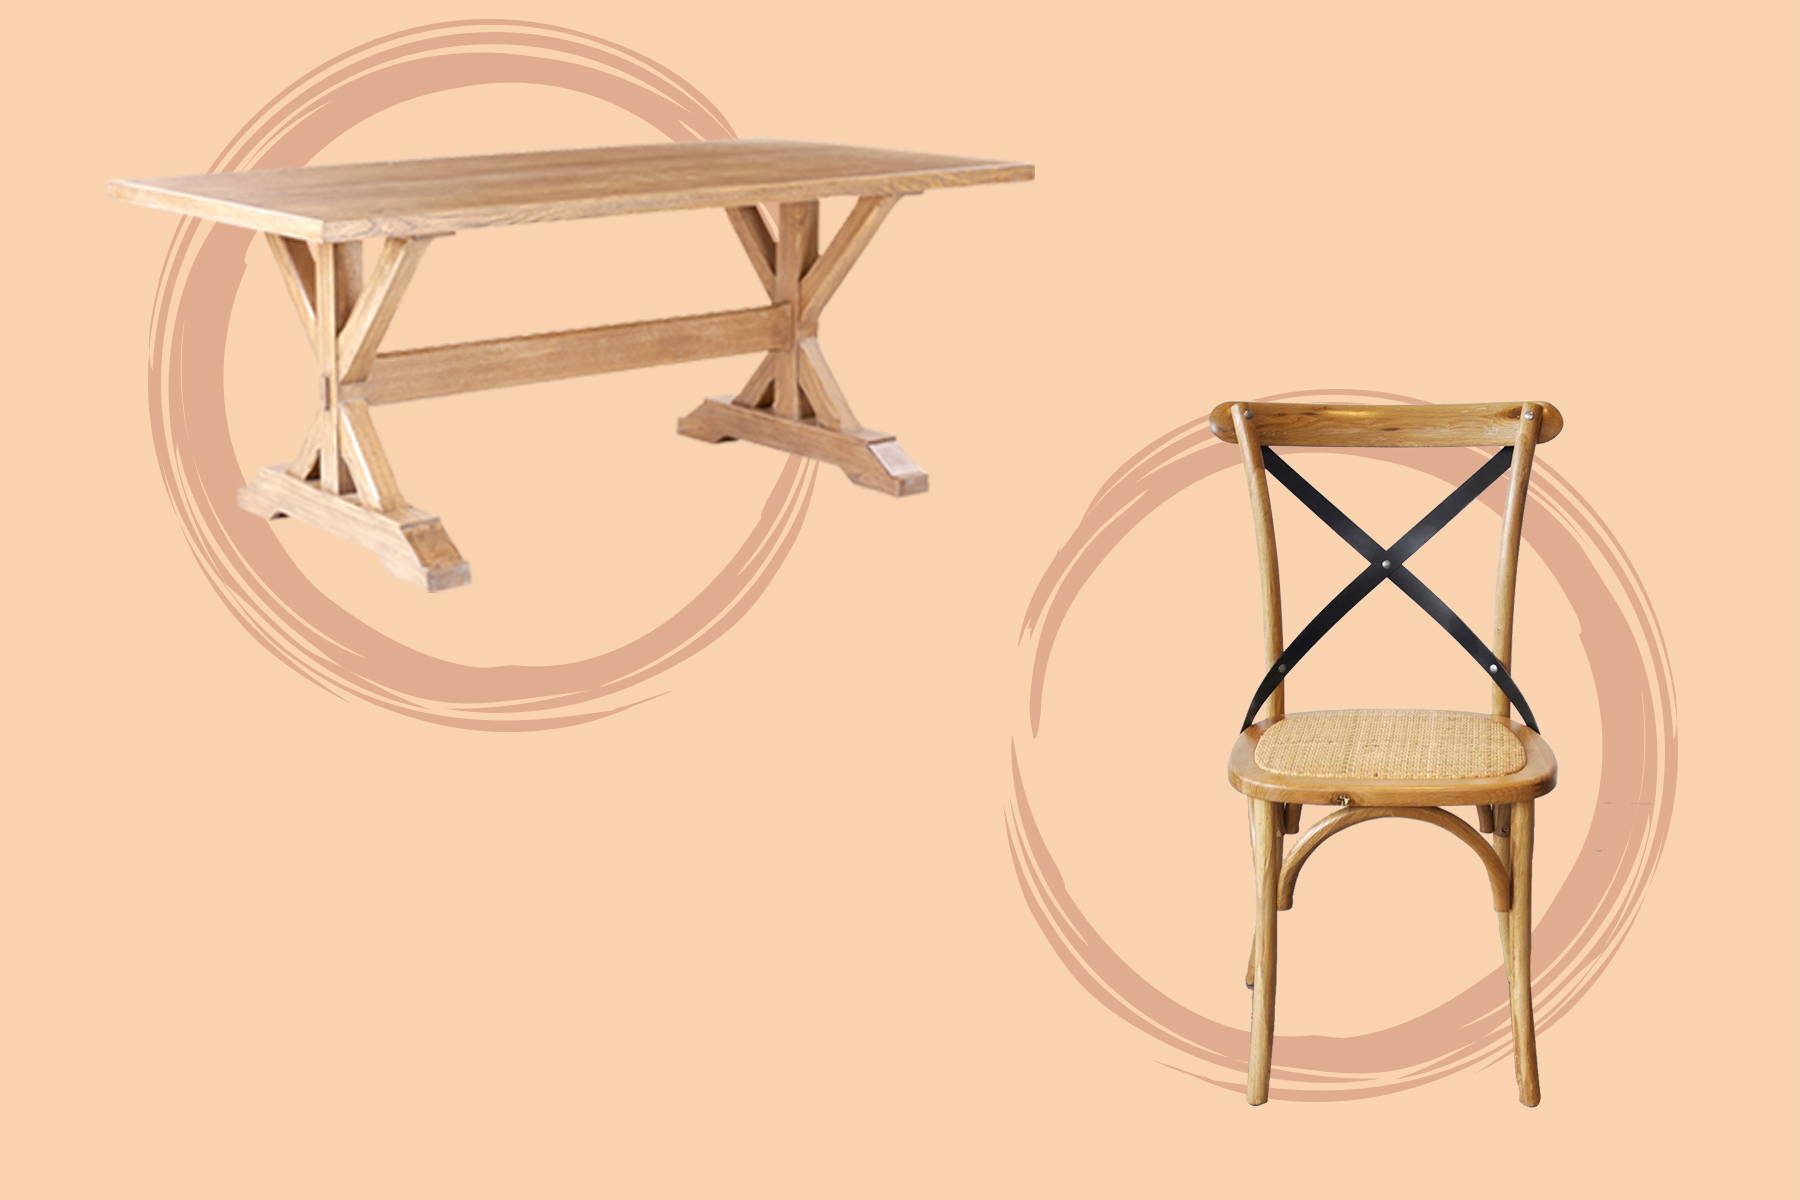 a wooden chair and table